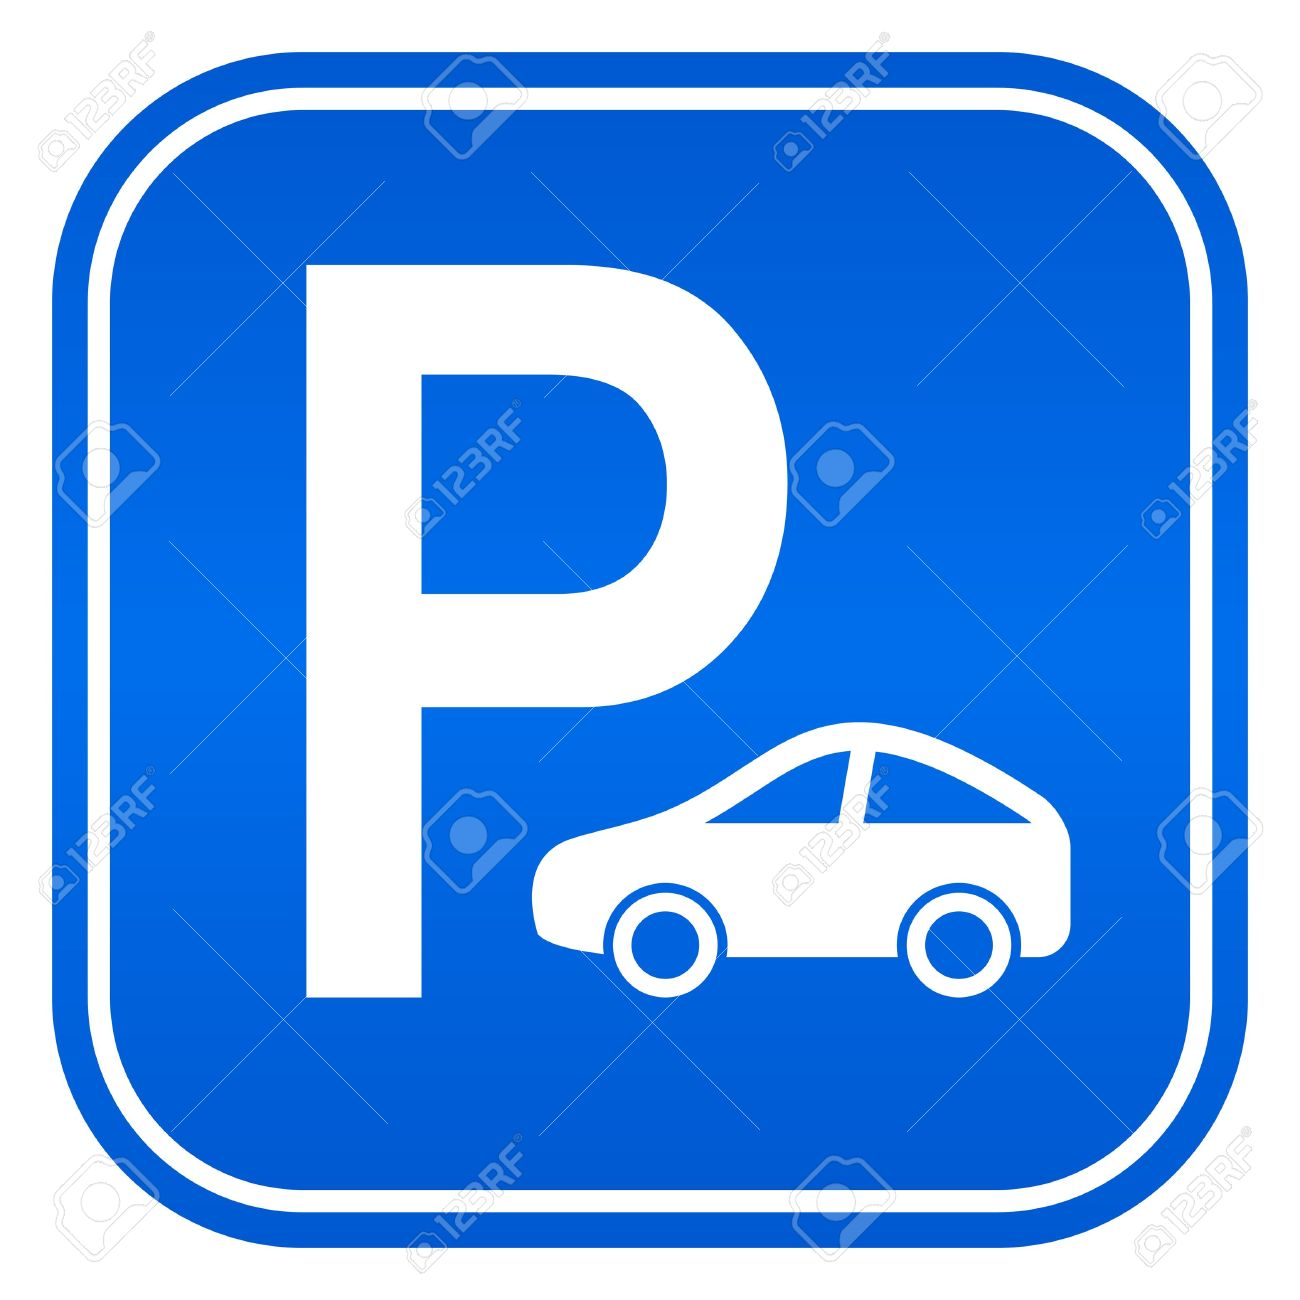 Two parking spaces clipart clip art download FREE PARKING FOR ALL OUR CLIENTS clip art download